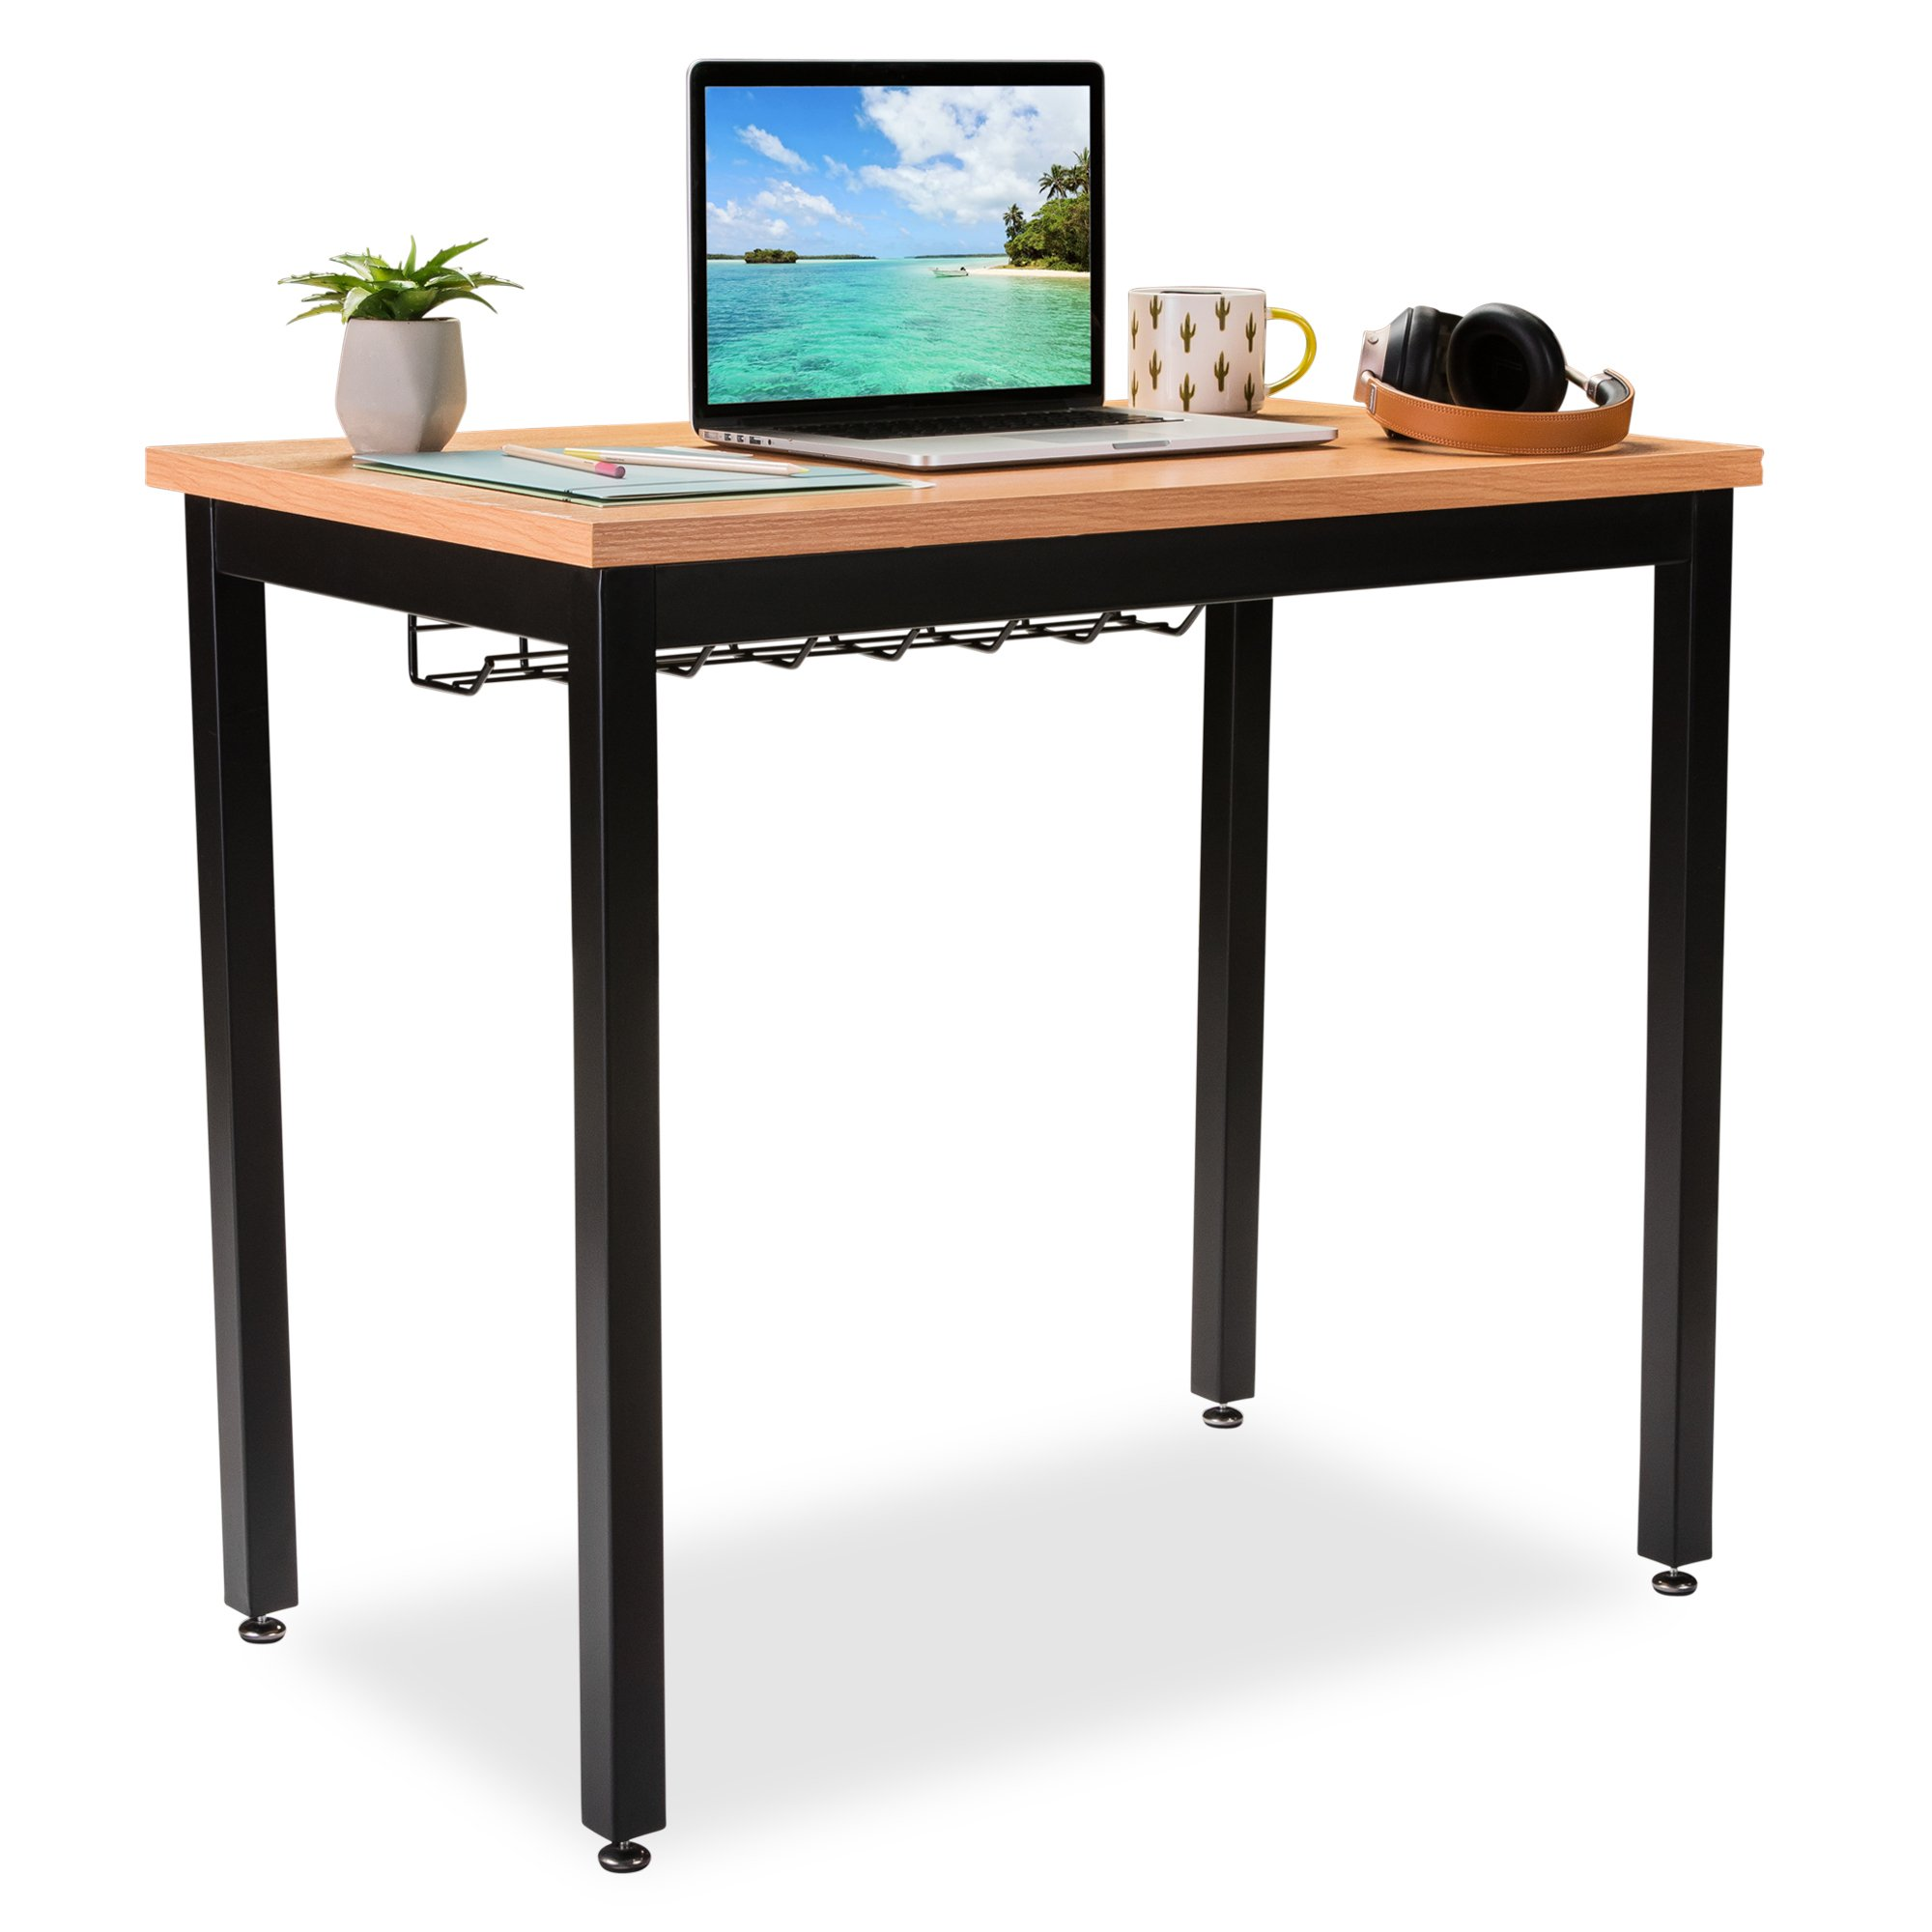 Small Computer Desk for Home Office - 36'' Length Table w/Cable Organizer - Sturdy and Heavy Duty Writing Desk for Small Spaces and Students Laptop Use - Damage-Free Promise (Pear) by The Office Oasis